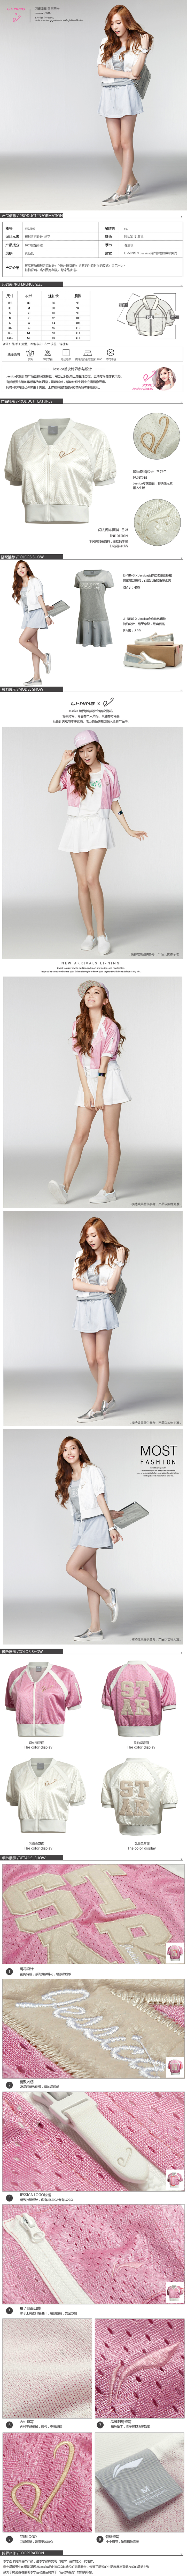 [140704] Jessica (SNSD) New Picture for Li-Ning Sport CF [15]